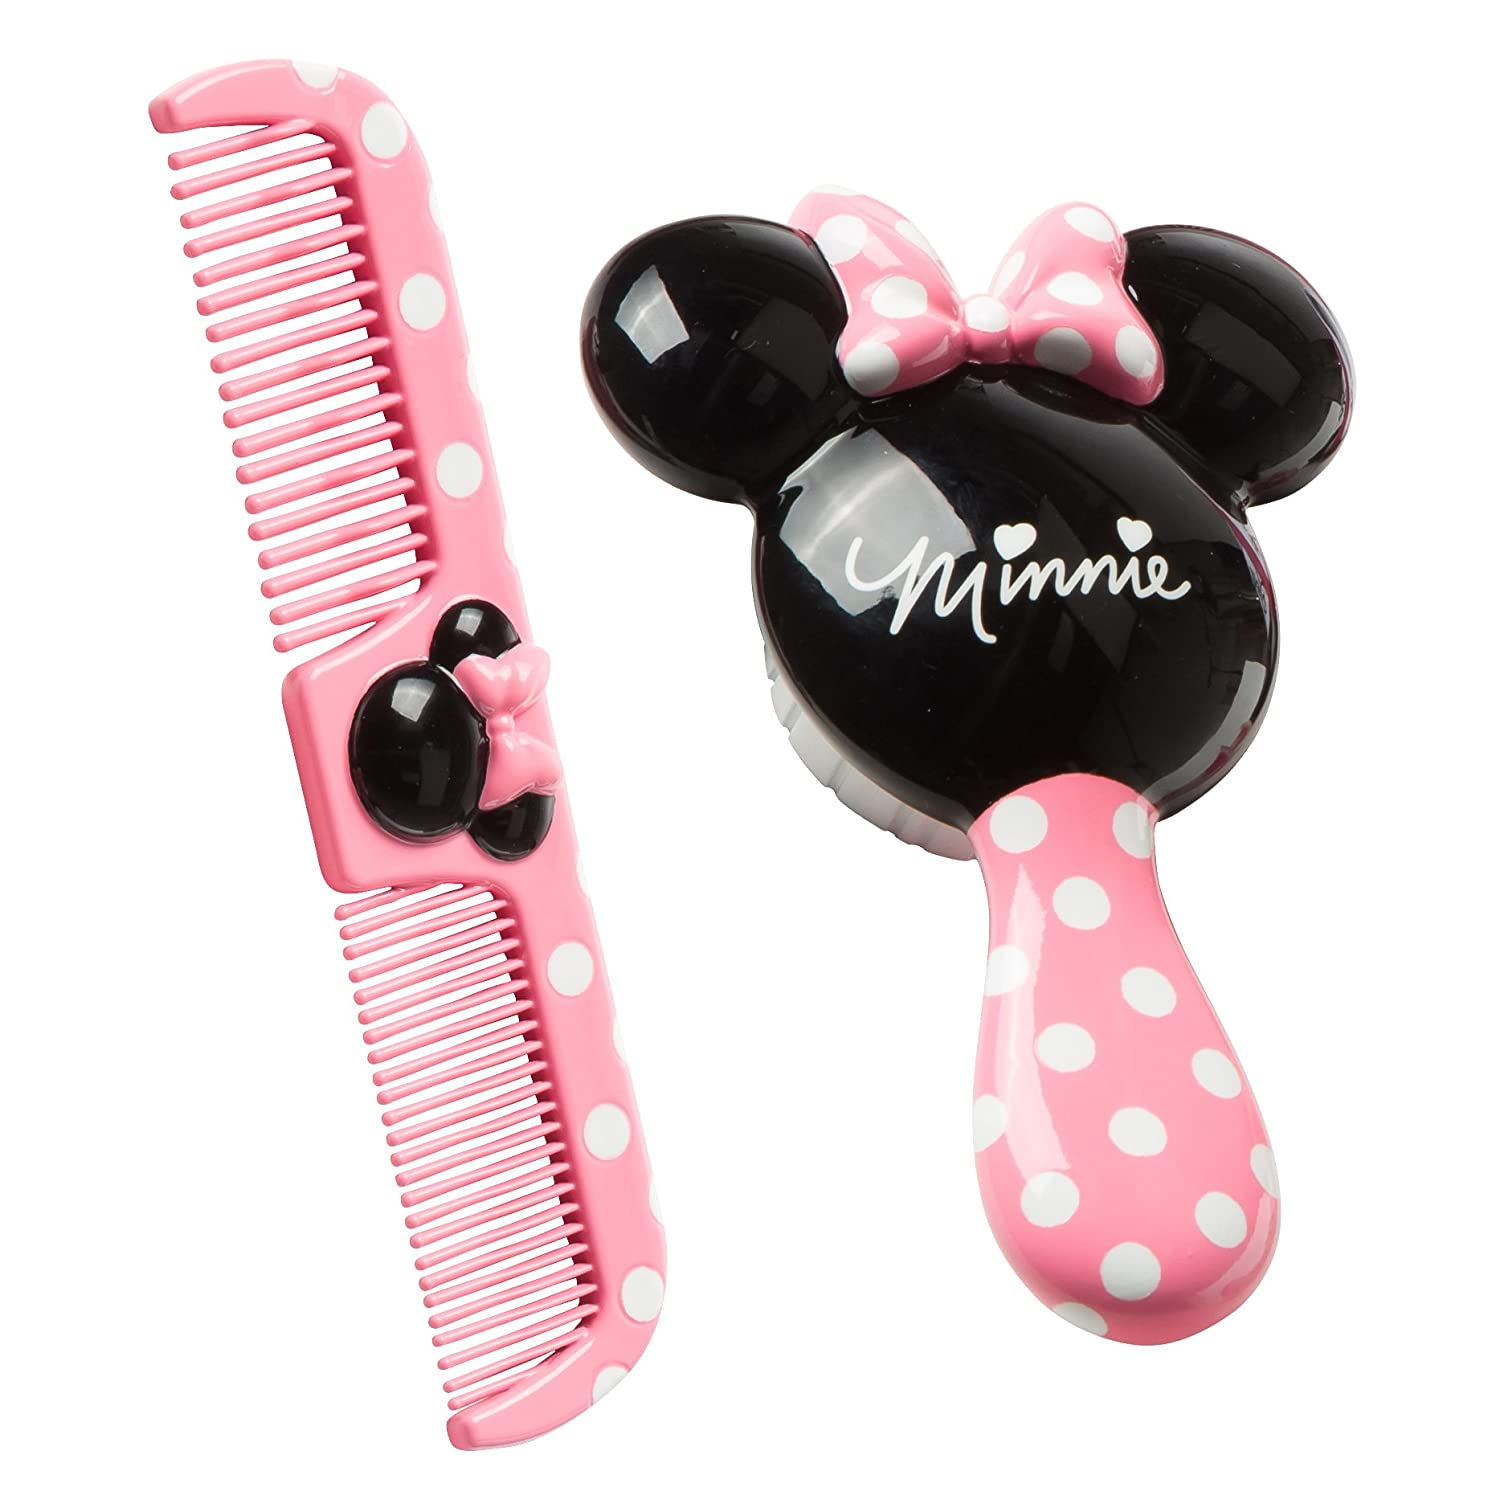 Minnie Mouse 'Minnie Salon' Brush & Comb Set - pink, one size